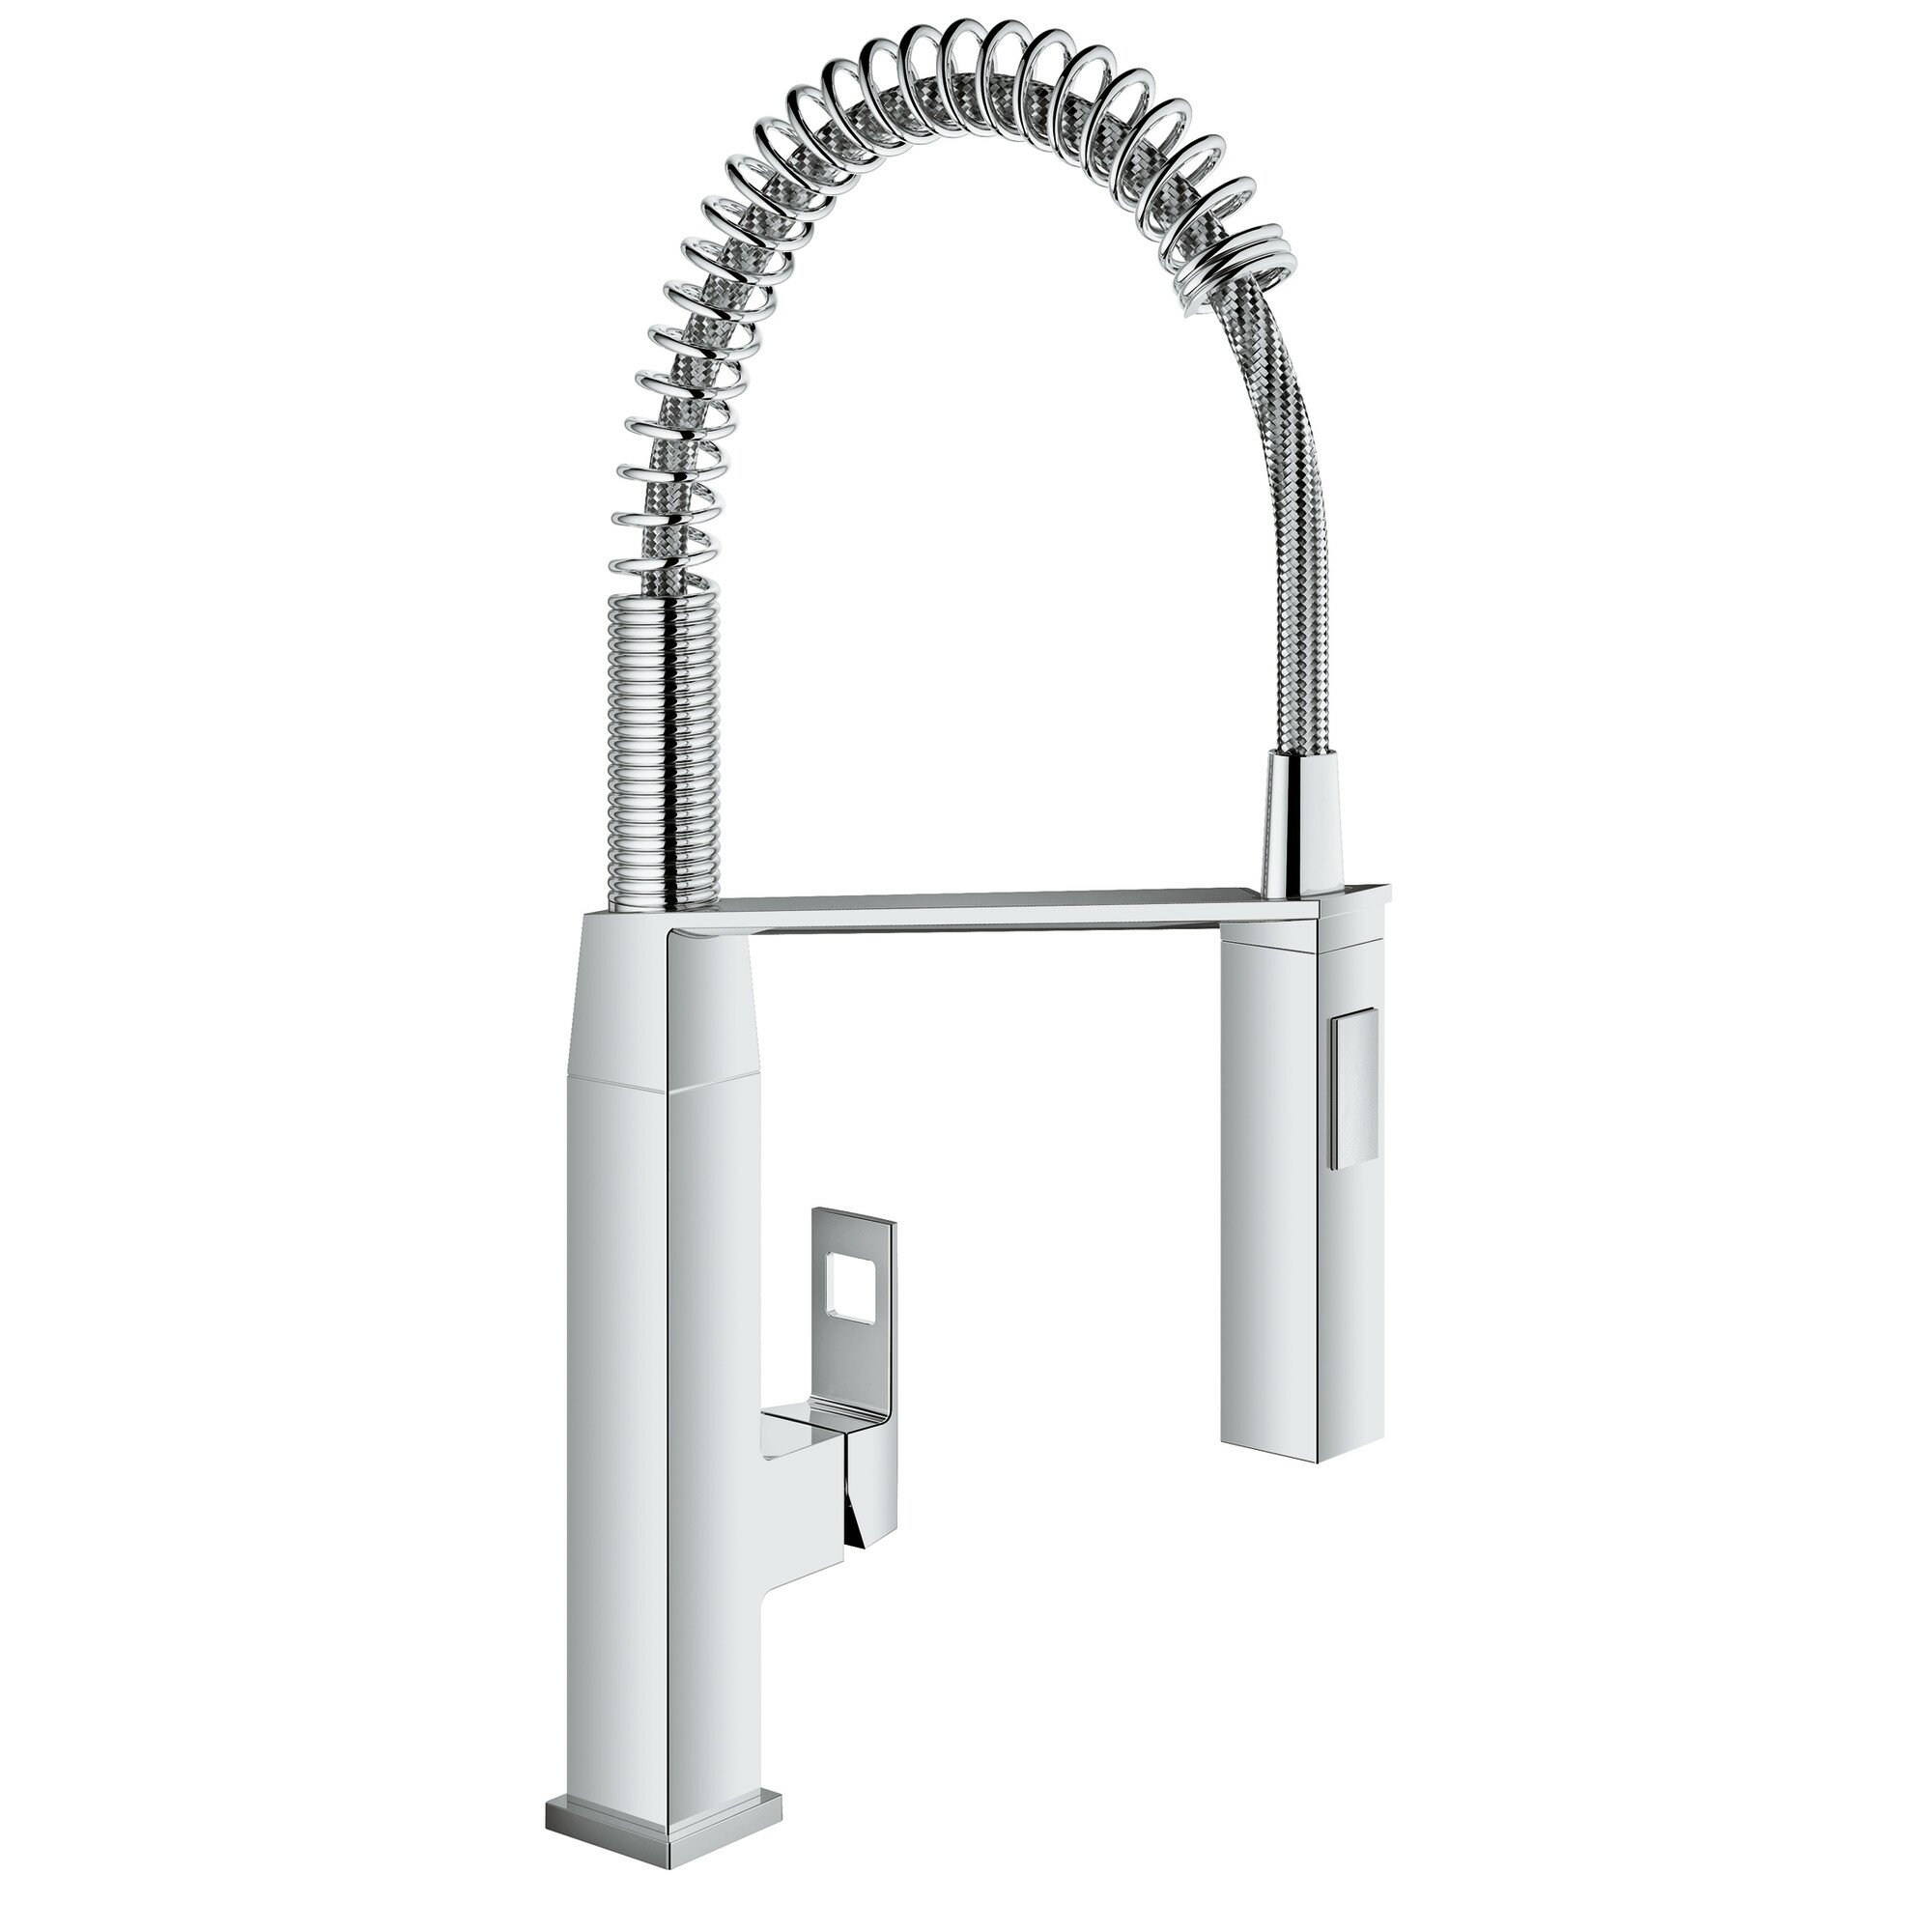 grohe kitchen faucets c a~ hansgrohe kitchen faucet Eurocube Single Handle Deck Mount Semi Pro Kitchen Faucet